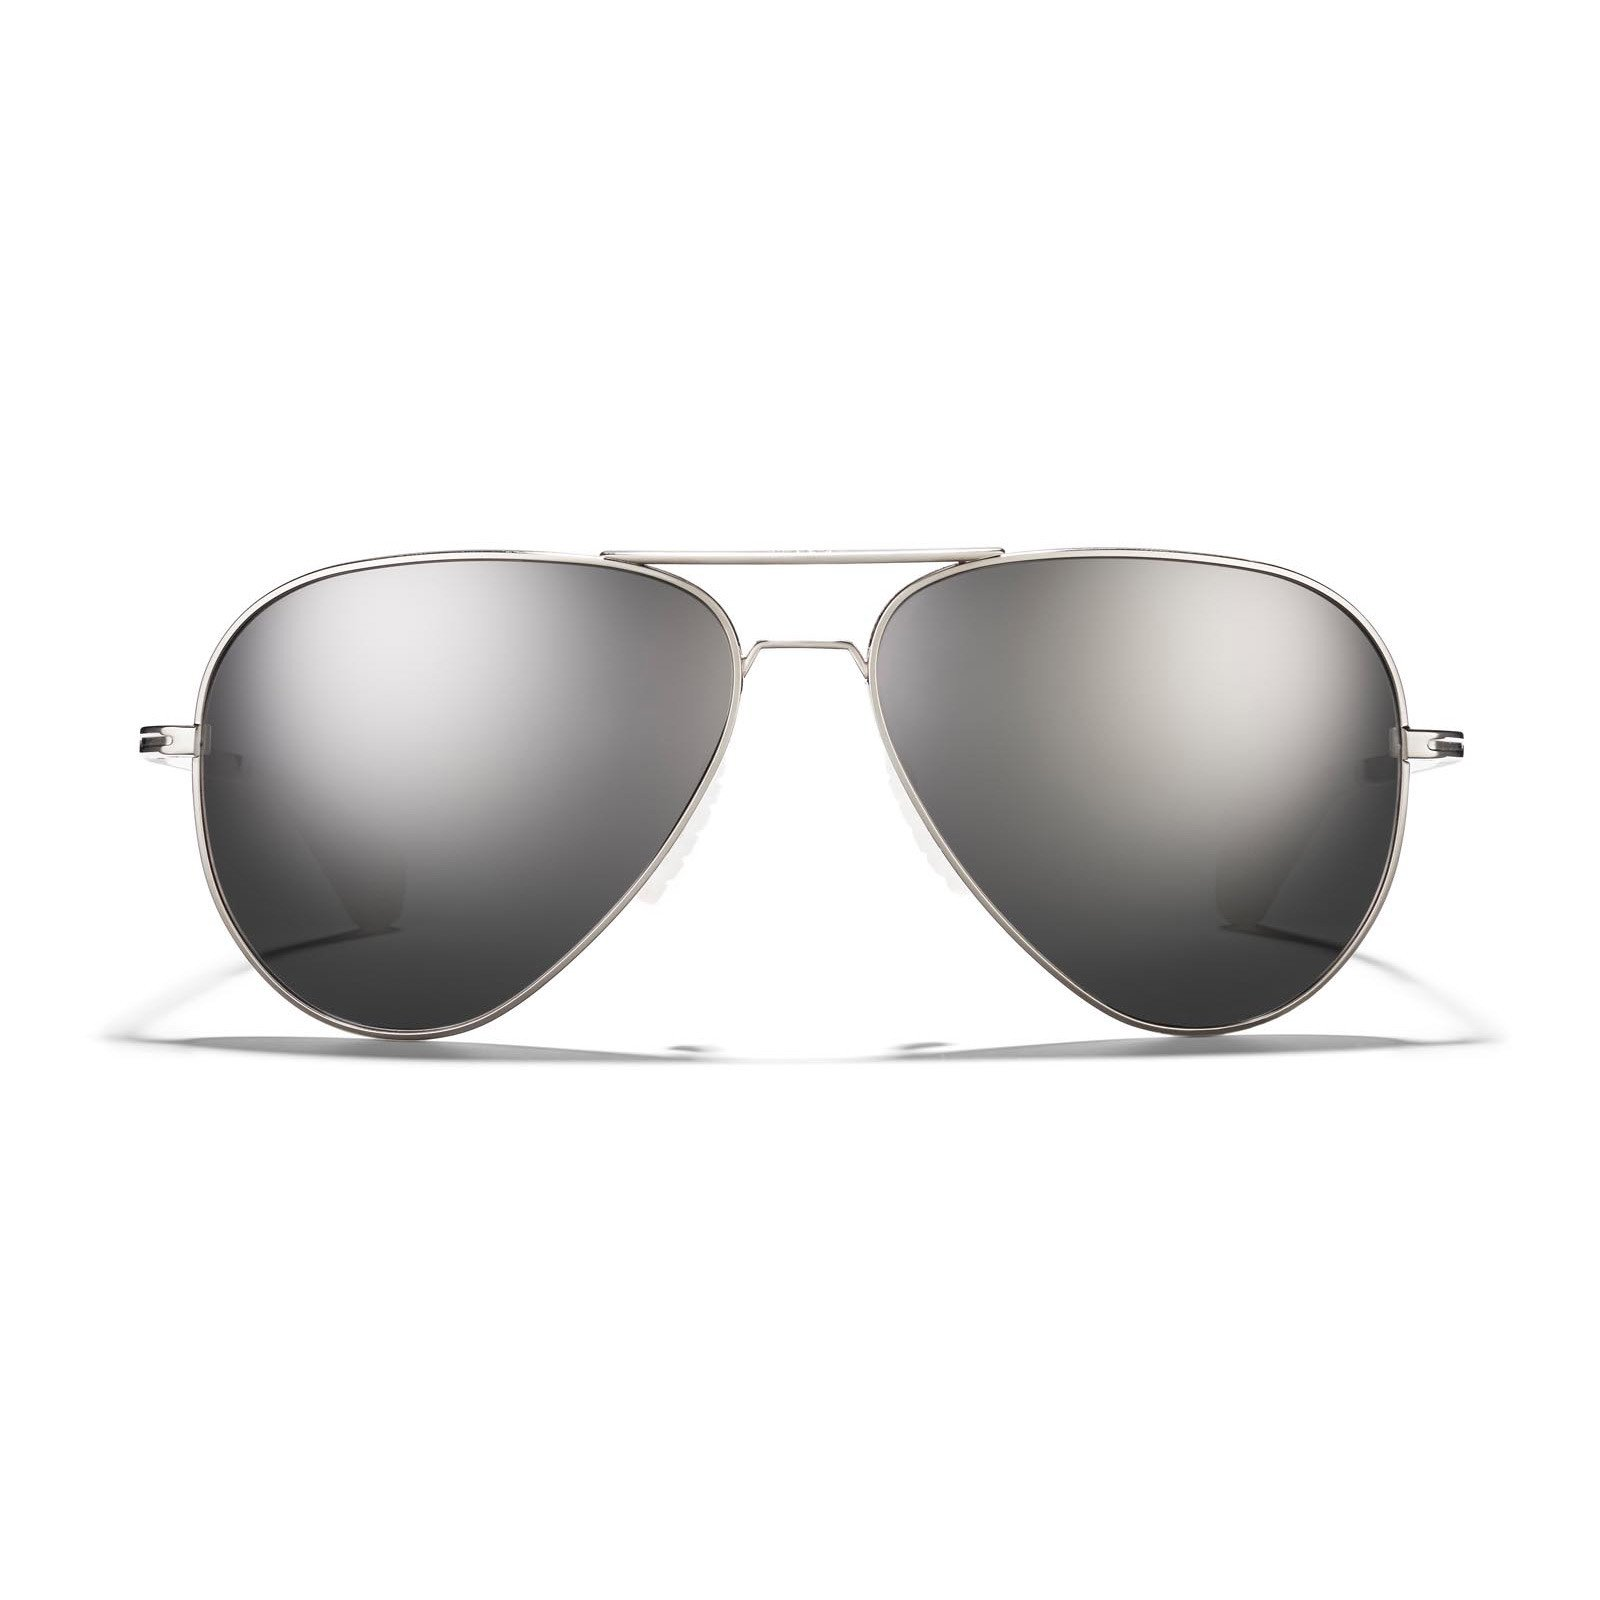 Phantom Titanium Sunglass Product Image